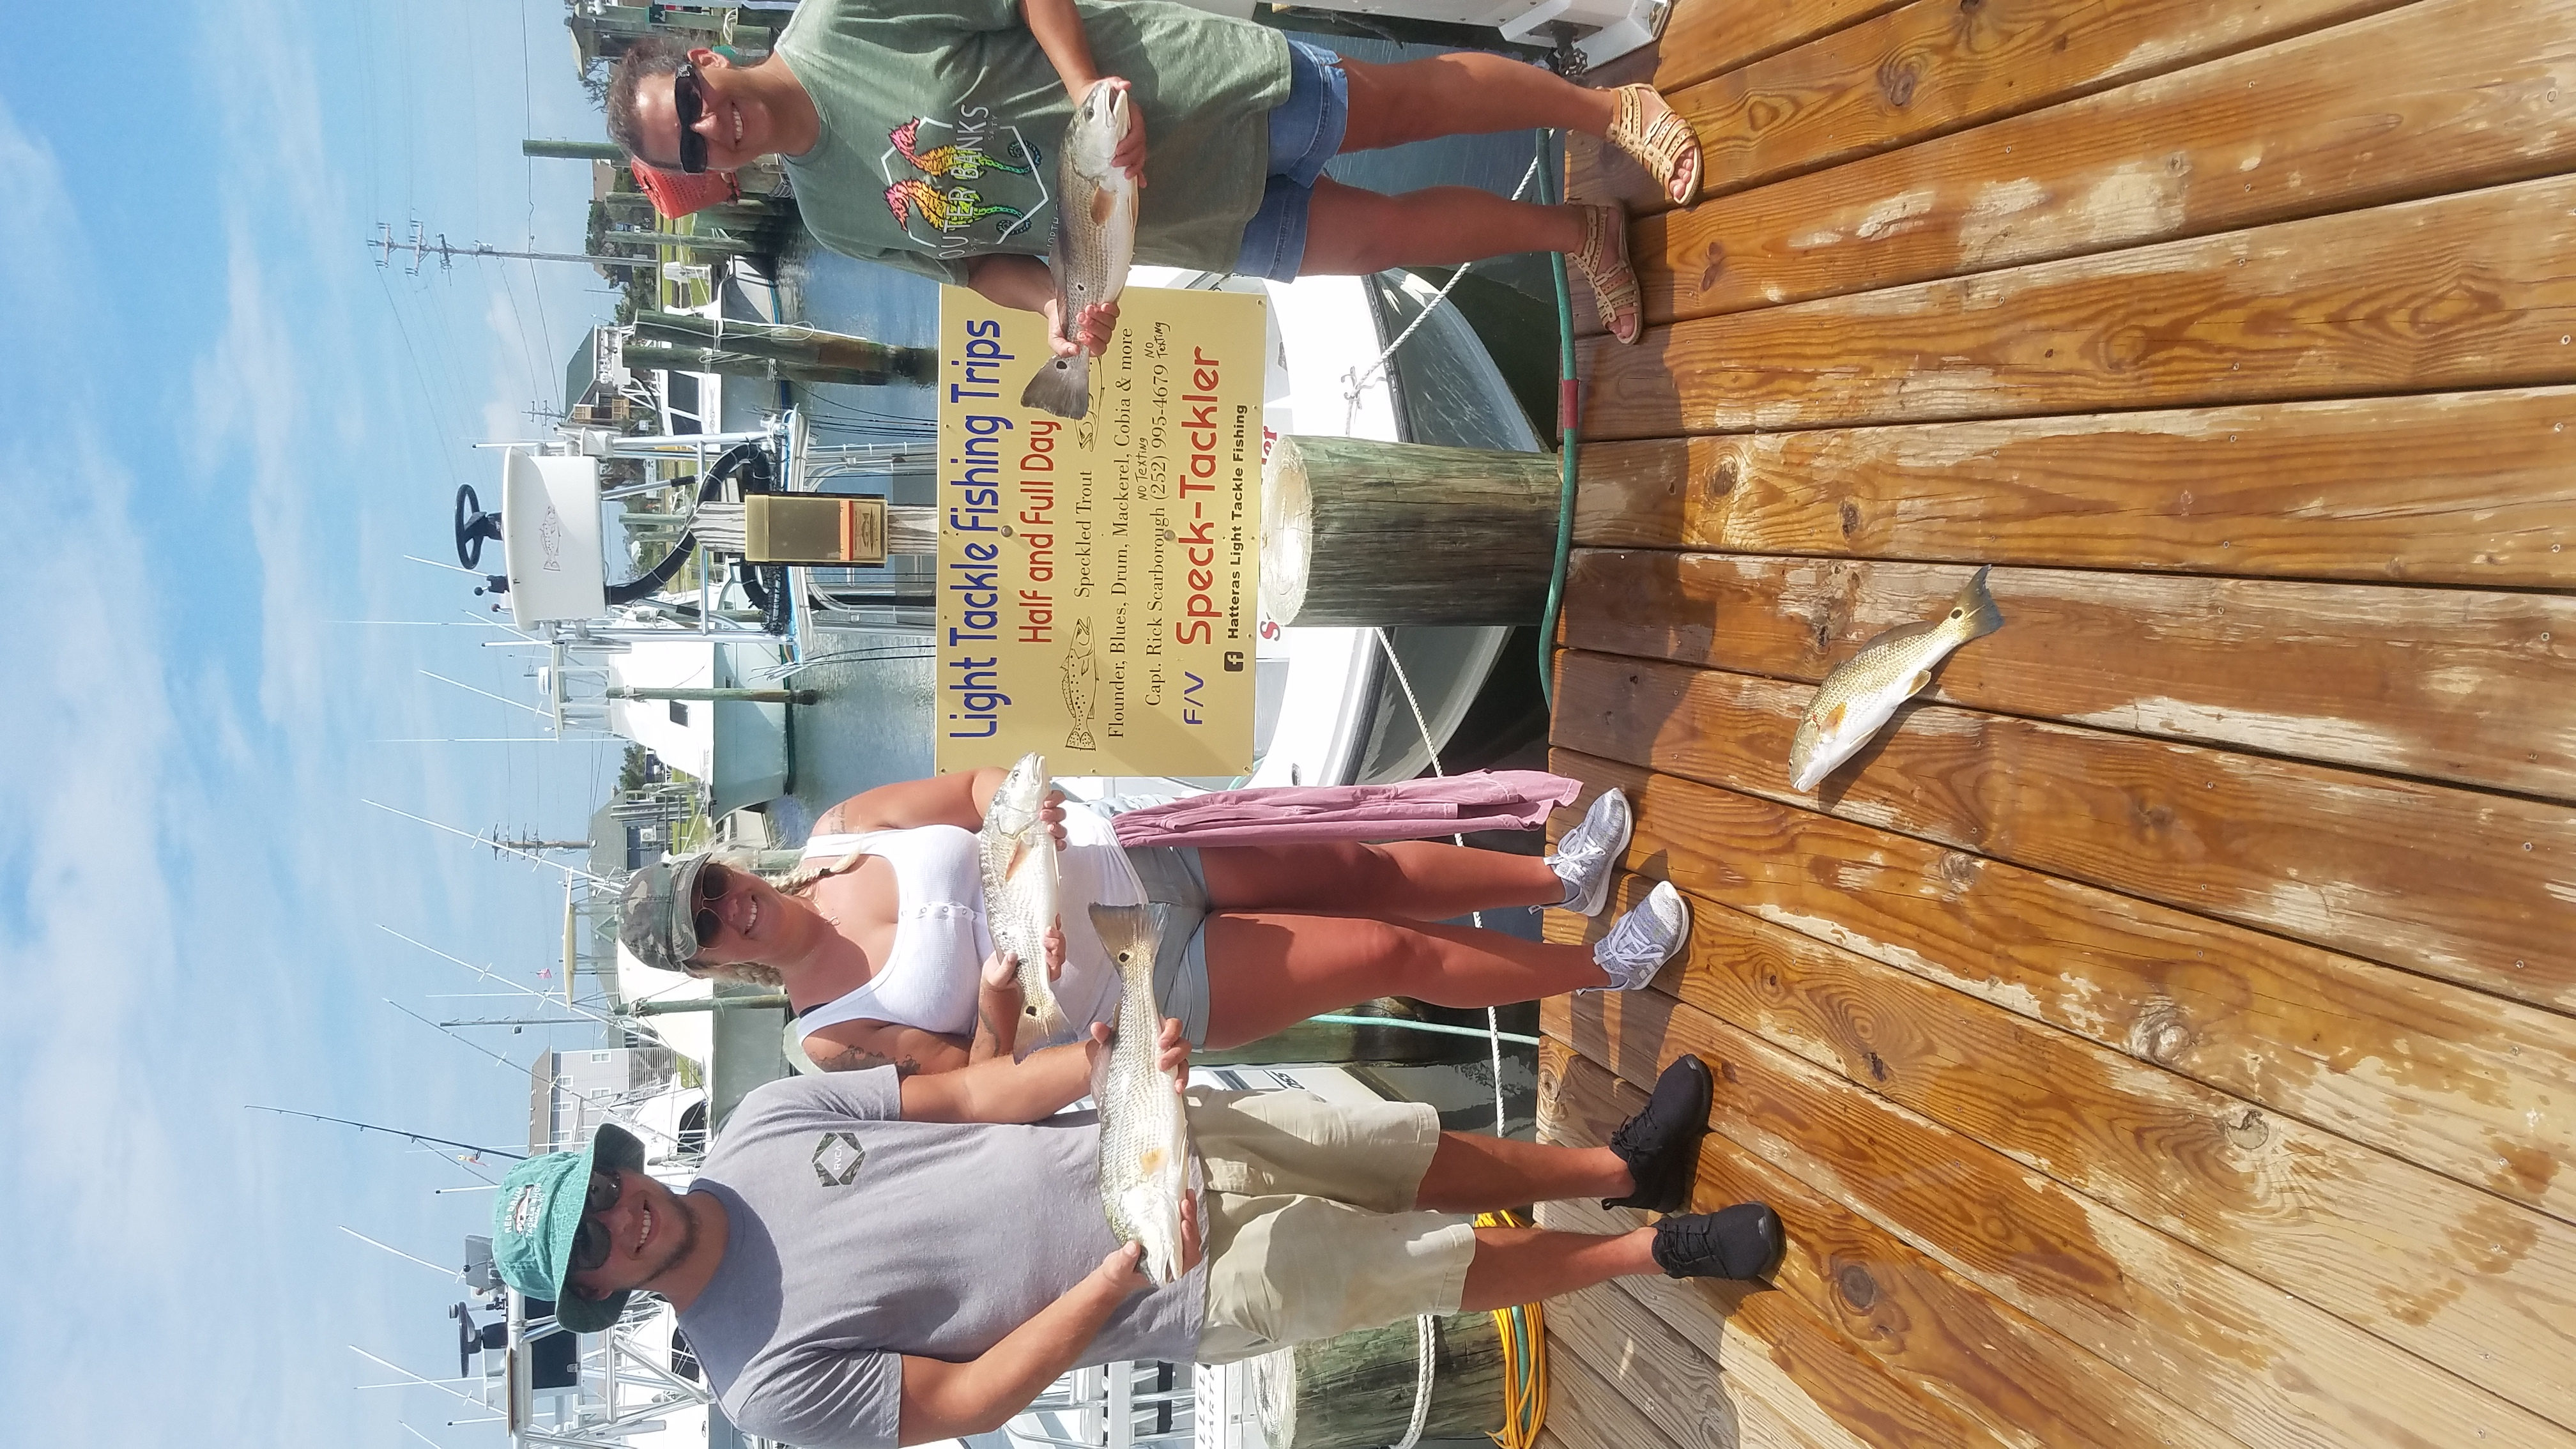 Speck-Tackler Fishing Charters Speckled Trout Red Drum Teach's Lair